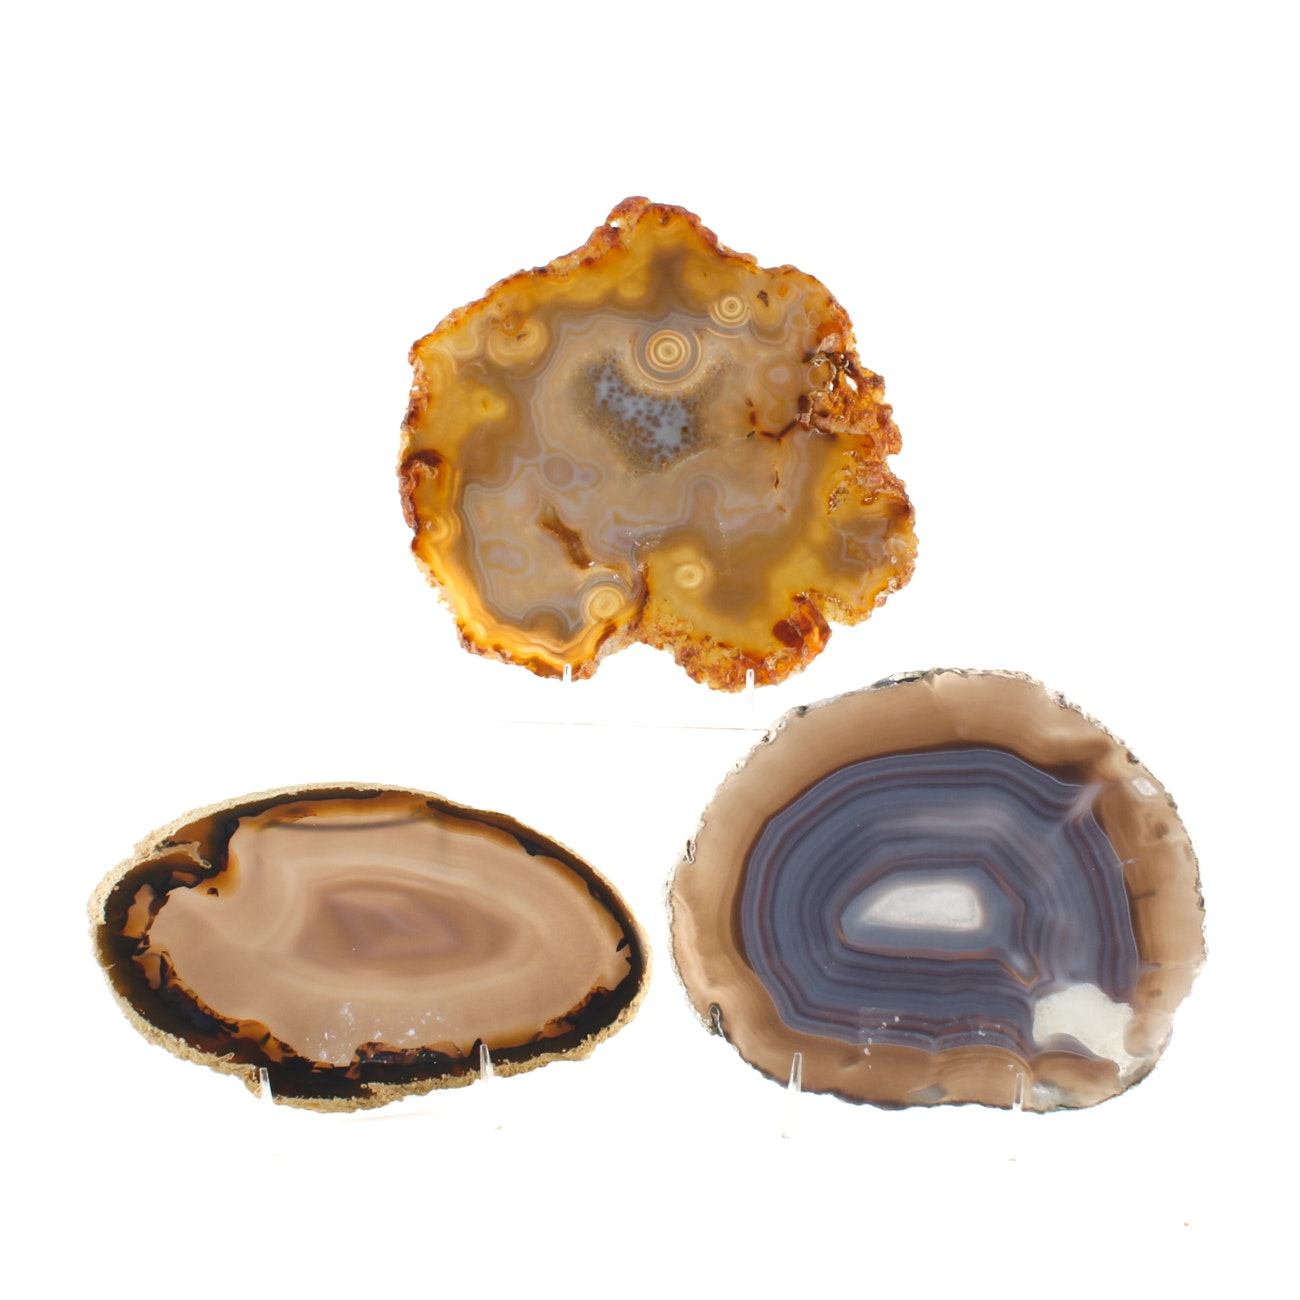 Collection of Three Agate and Quartz Geode Cross-Sections